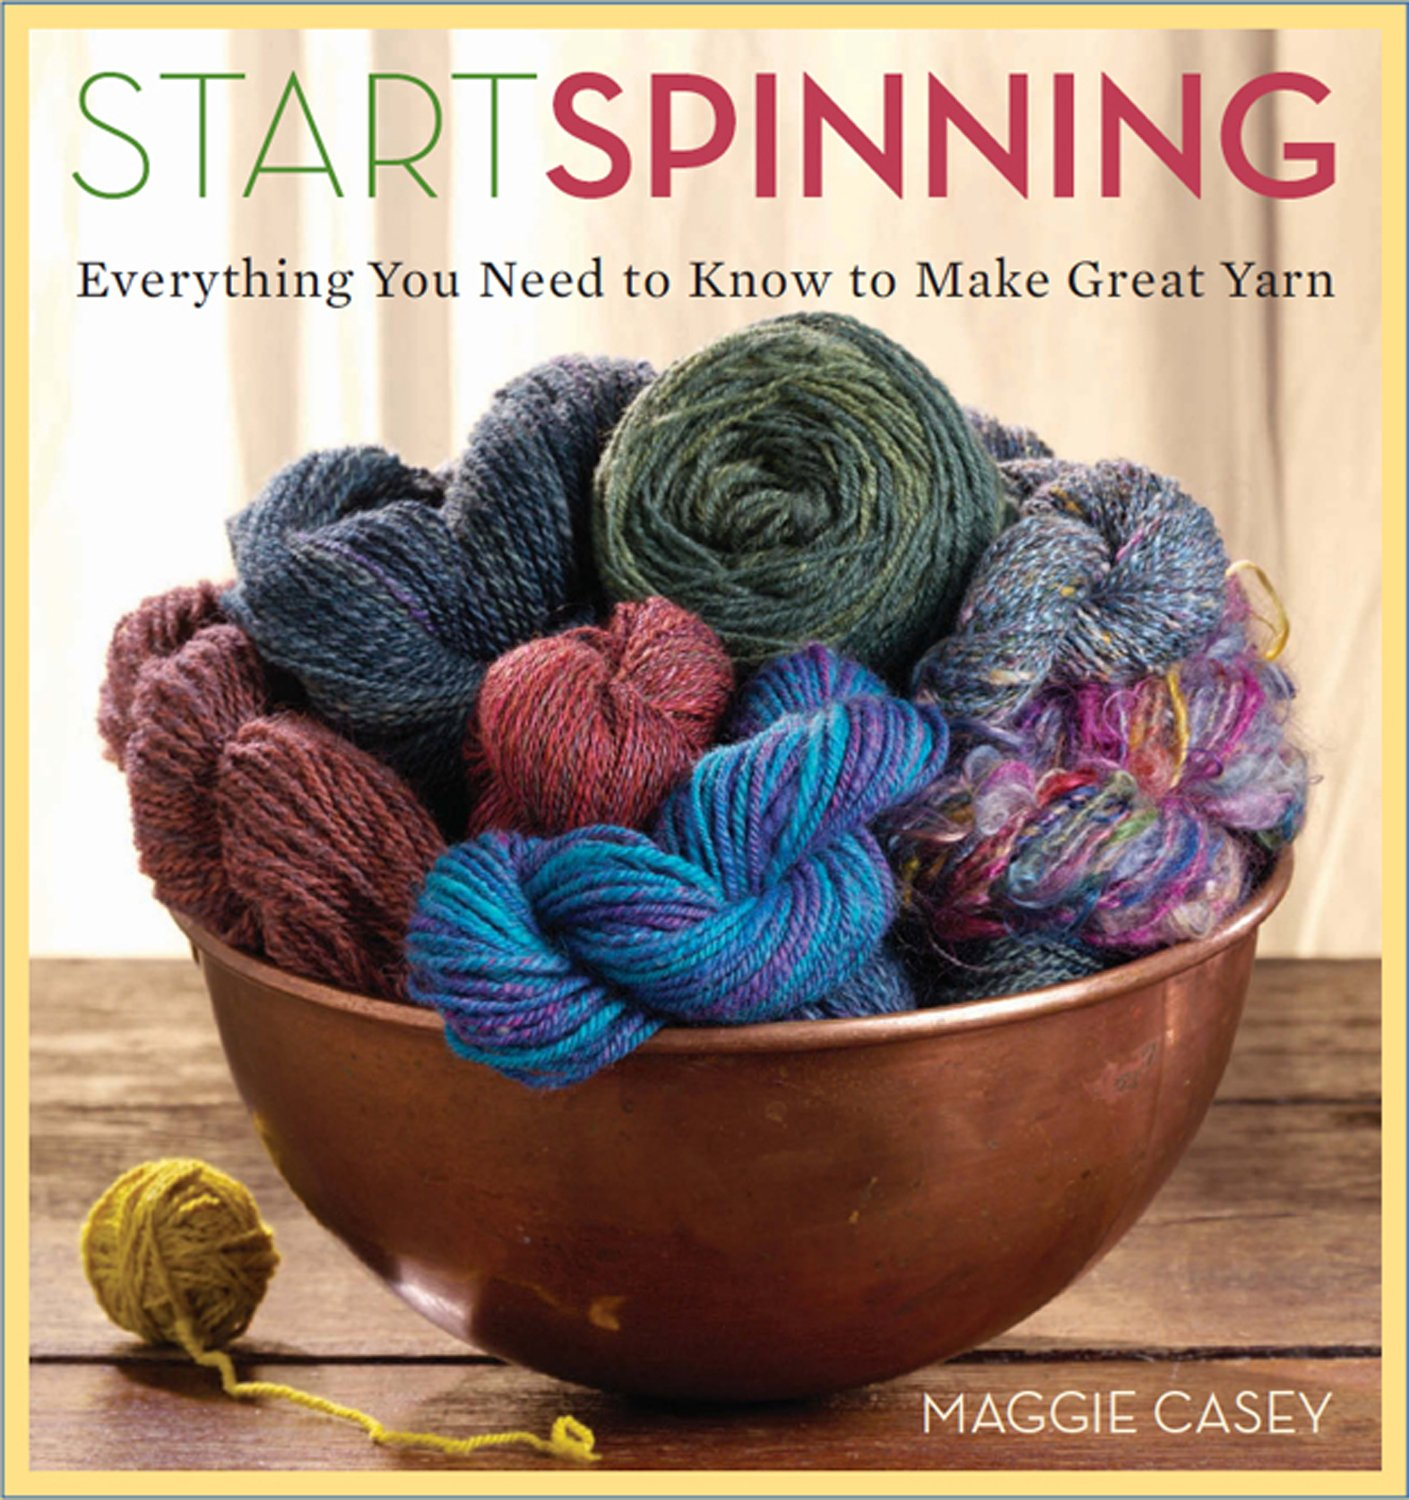 Start Spinning: Everything You Need to Know to Make Great Yarn ...